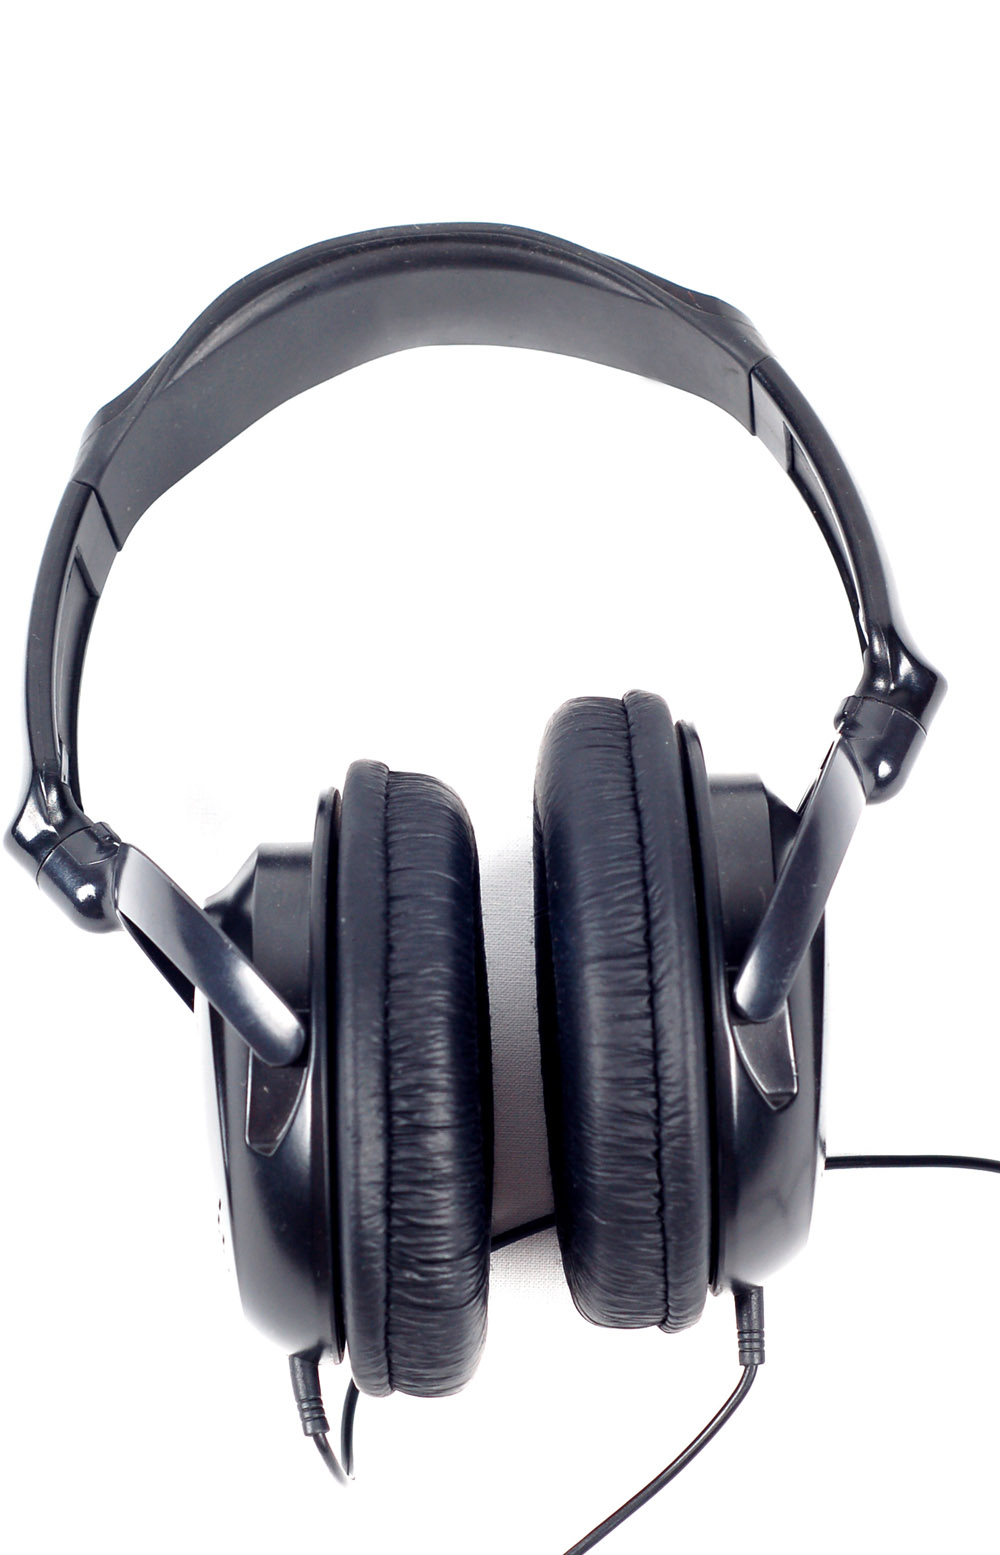 High-definition headphones picture 22518